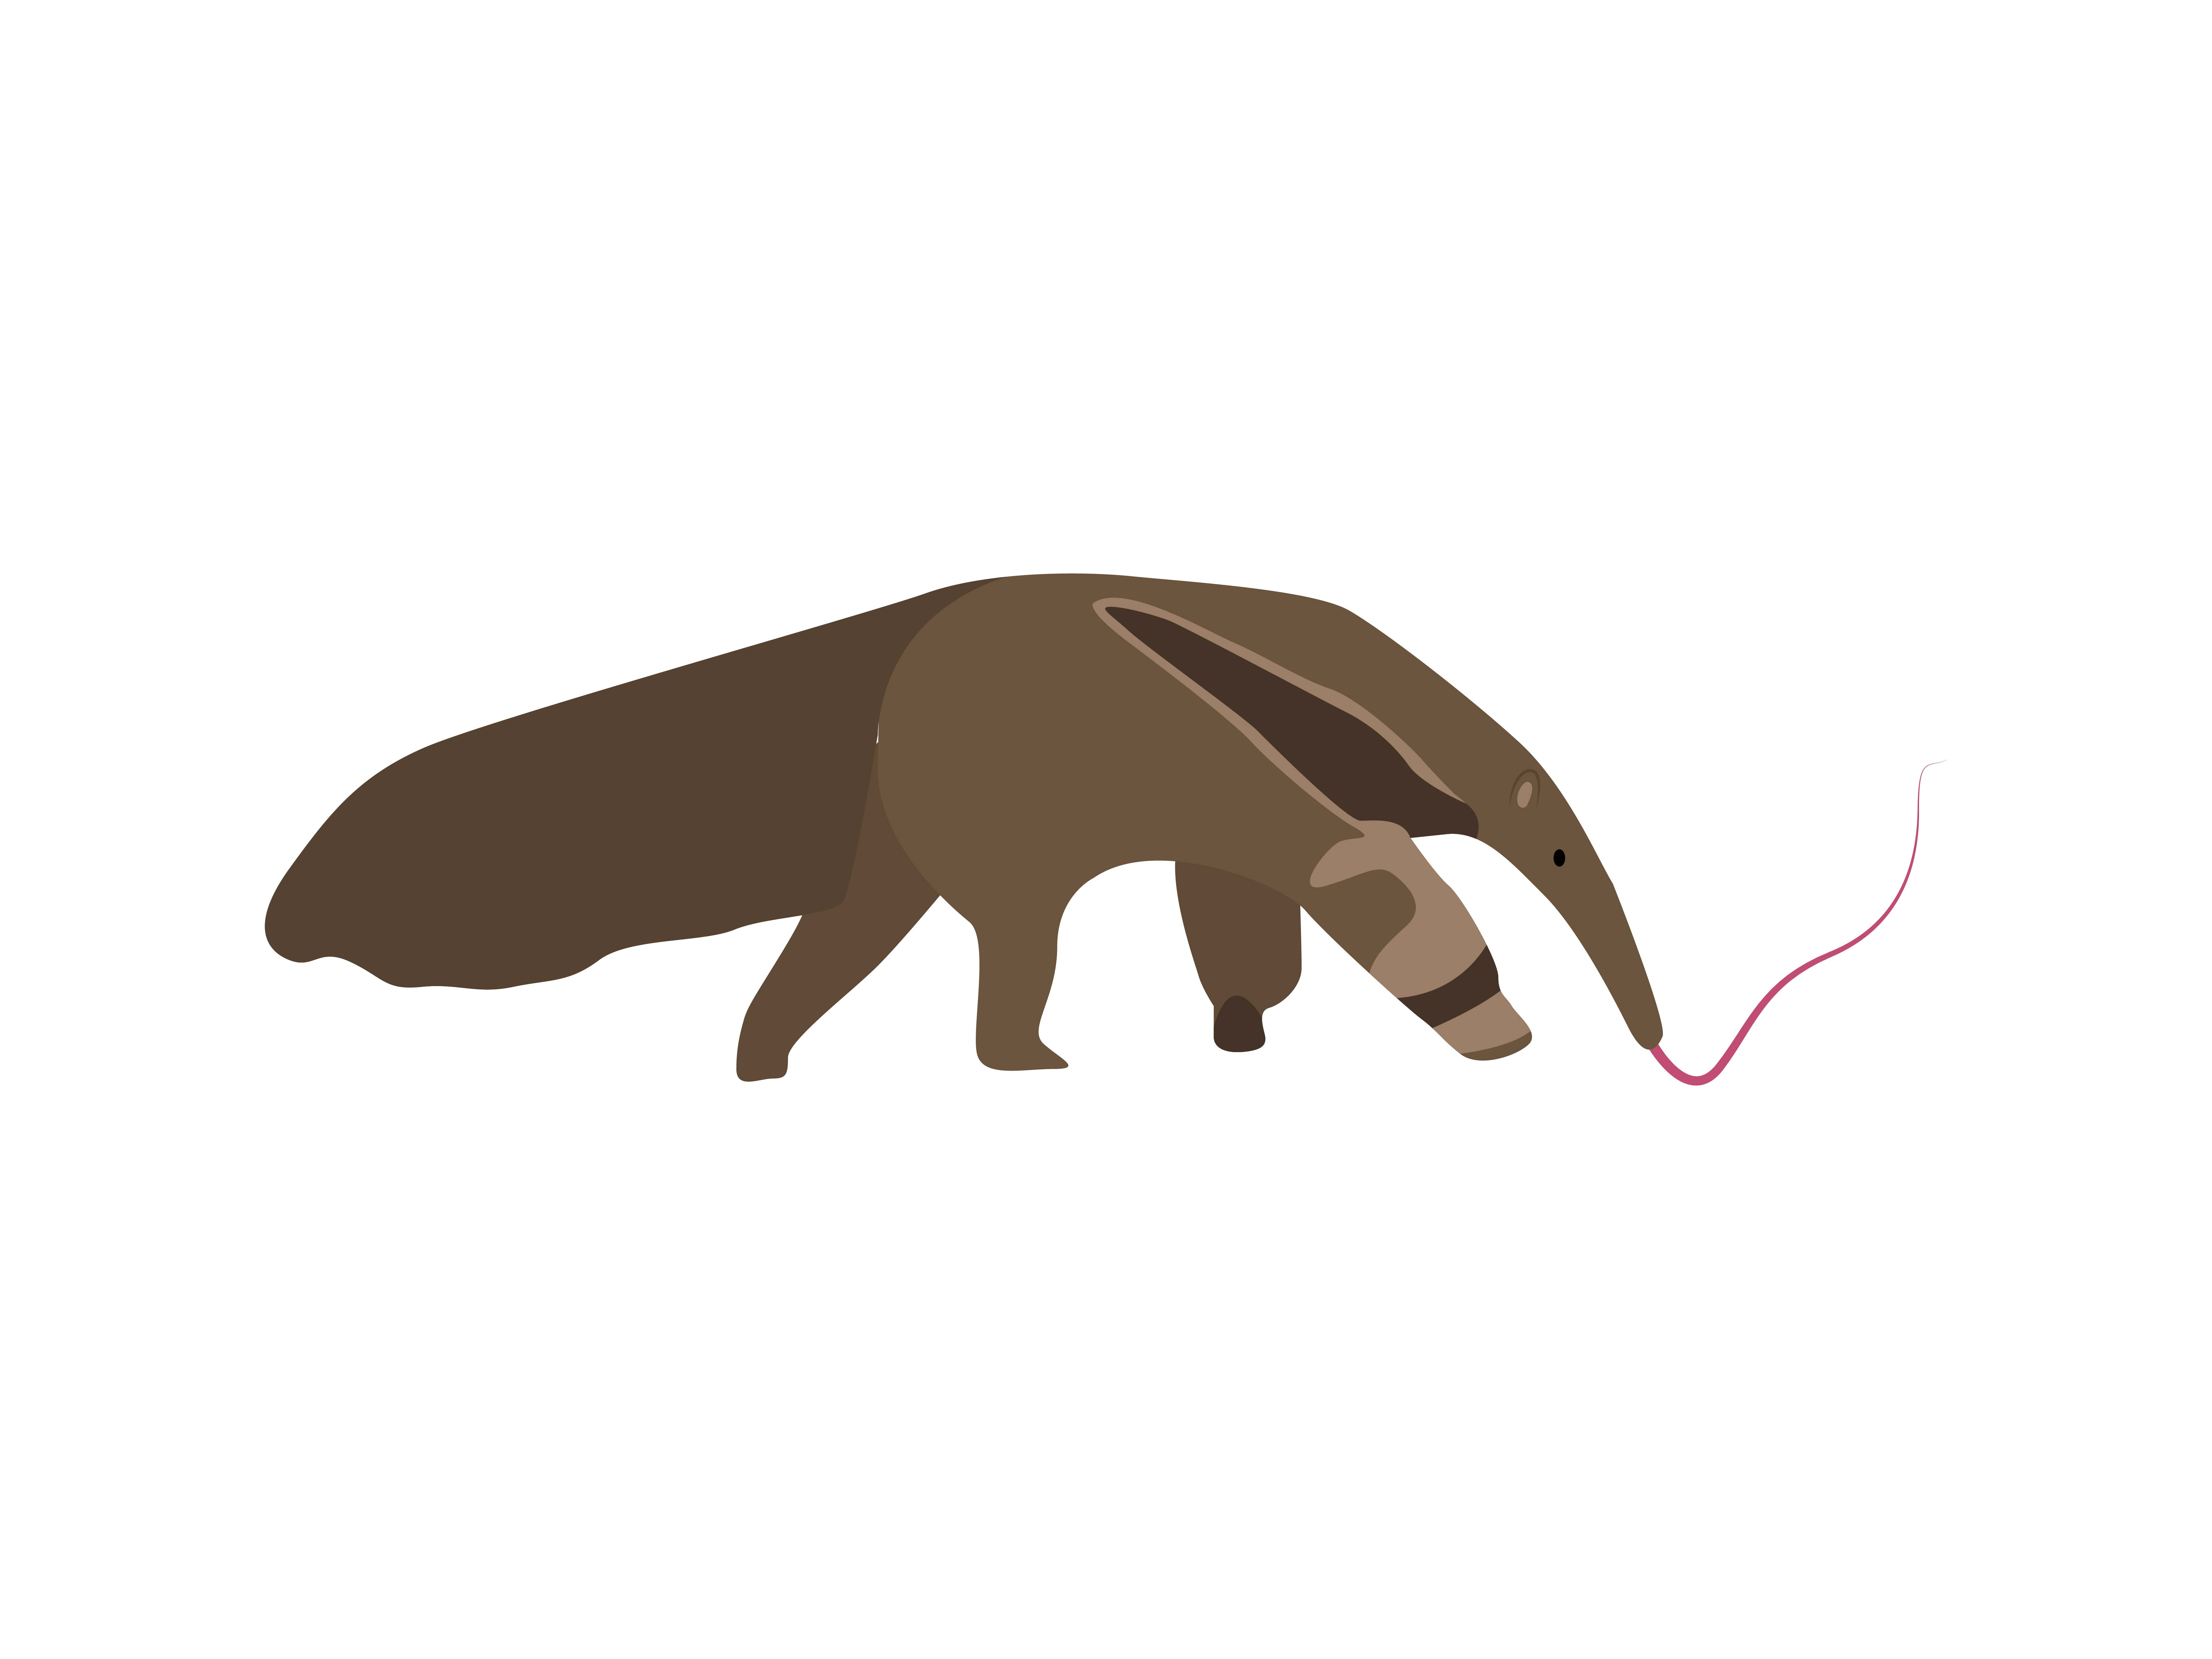 Download Free Giant Anteater Animal Graphic By Archshape Creative Fabrica for Cricut Explore, Silhouette and other cutting machines.